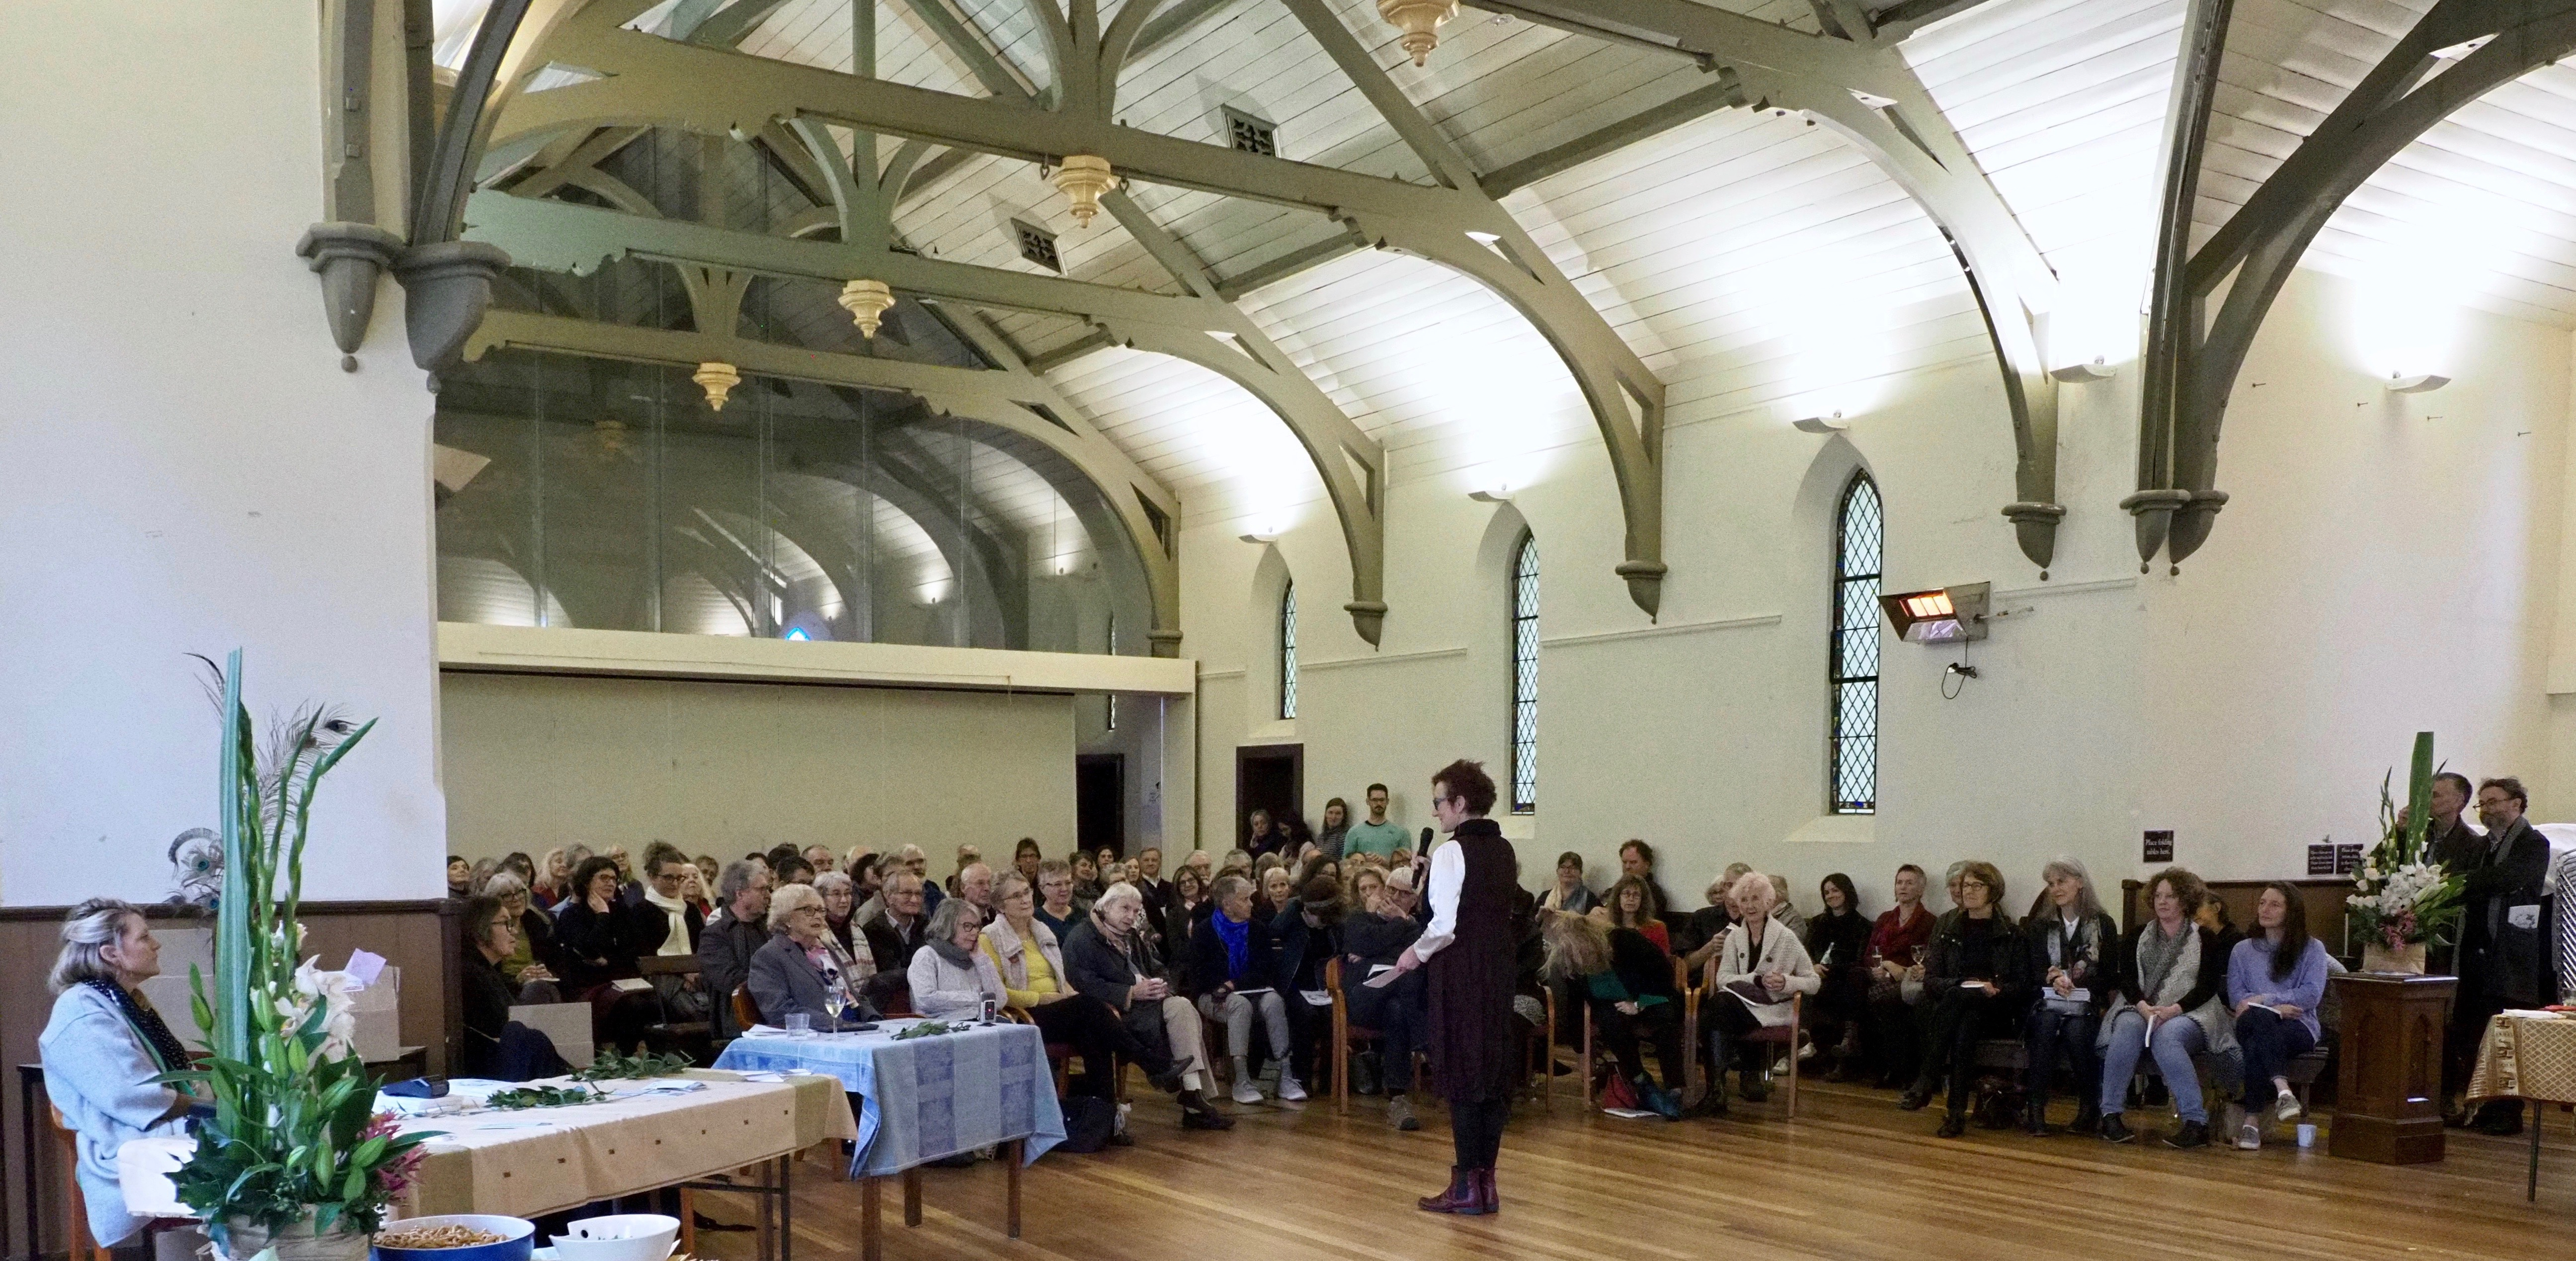 crowd in church hall at book launch